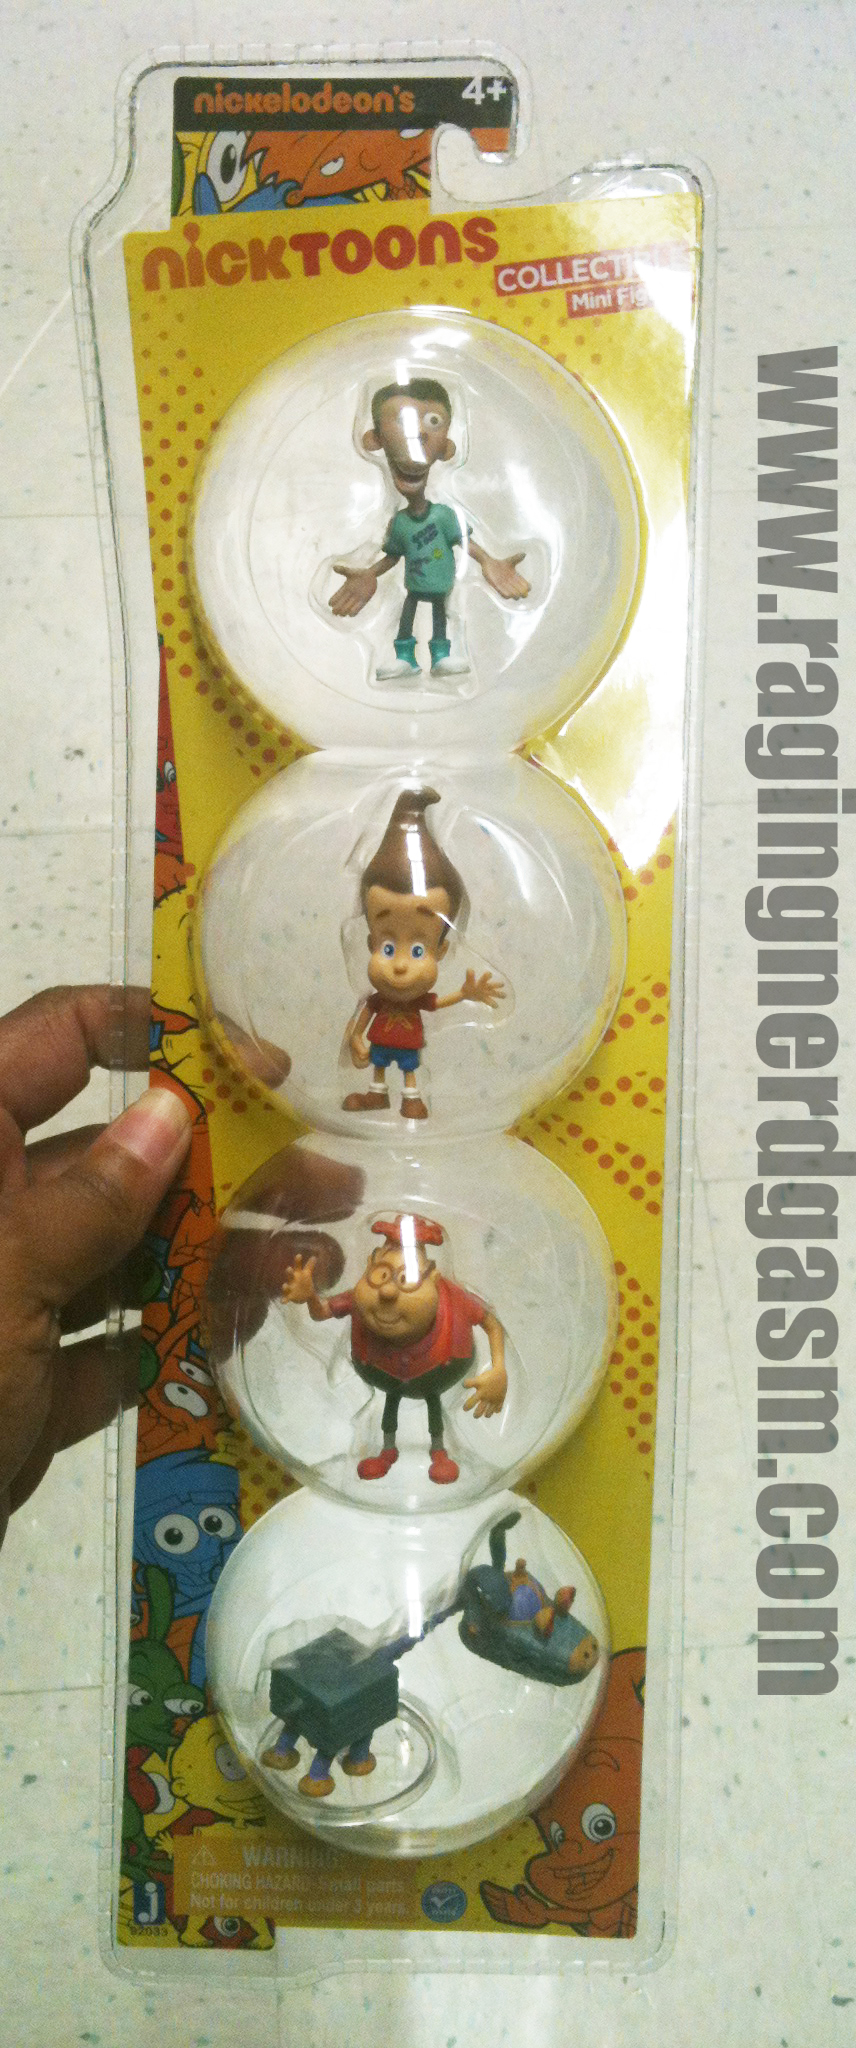 Nickelodeon's NickToons Collectible Mini Figures Jimmy Neutron 4 pack by Jazwares 001